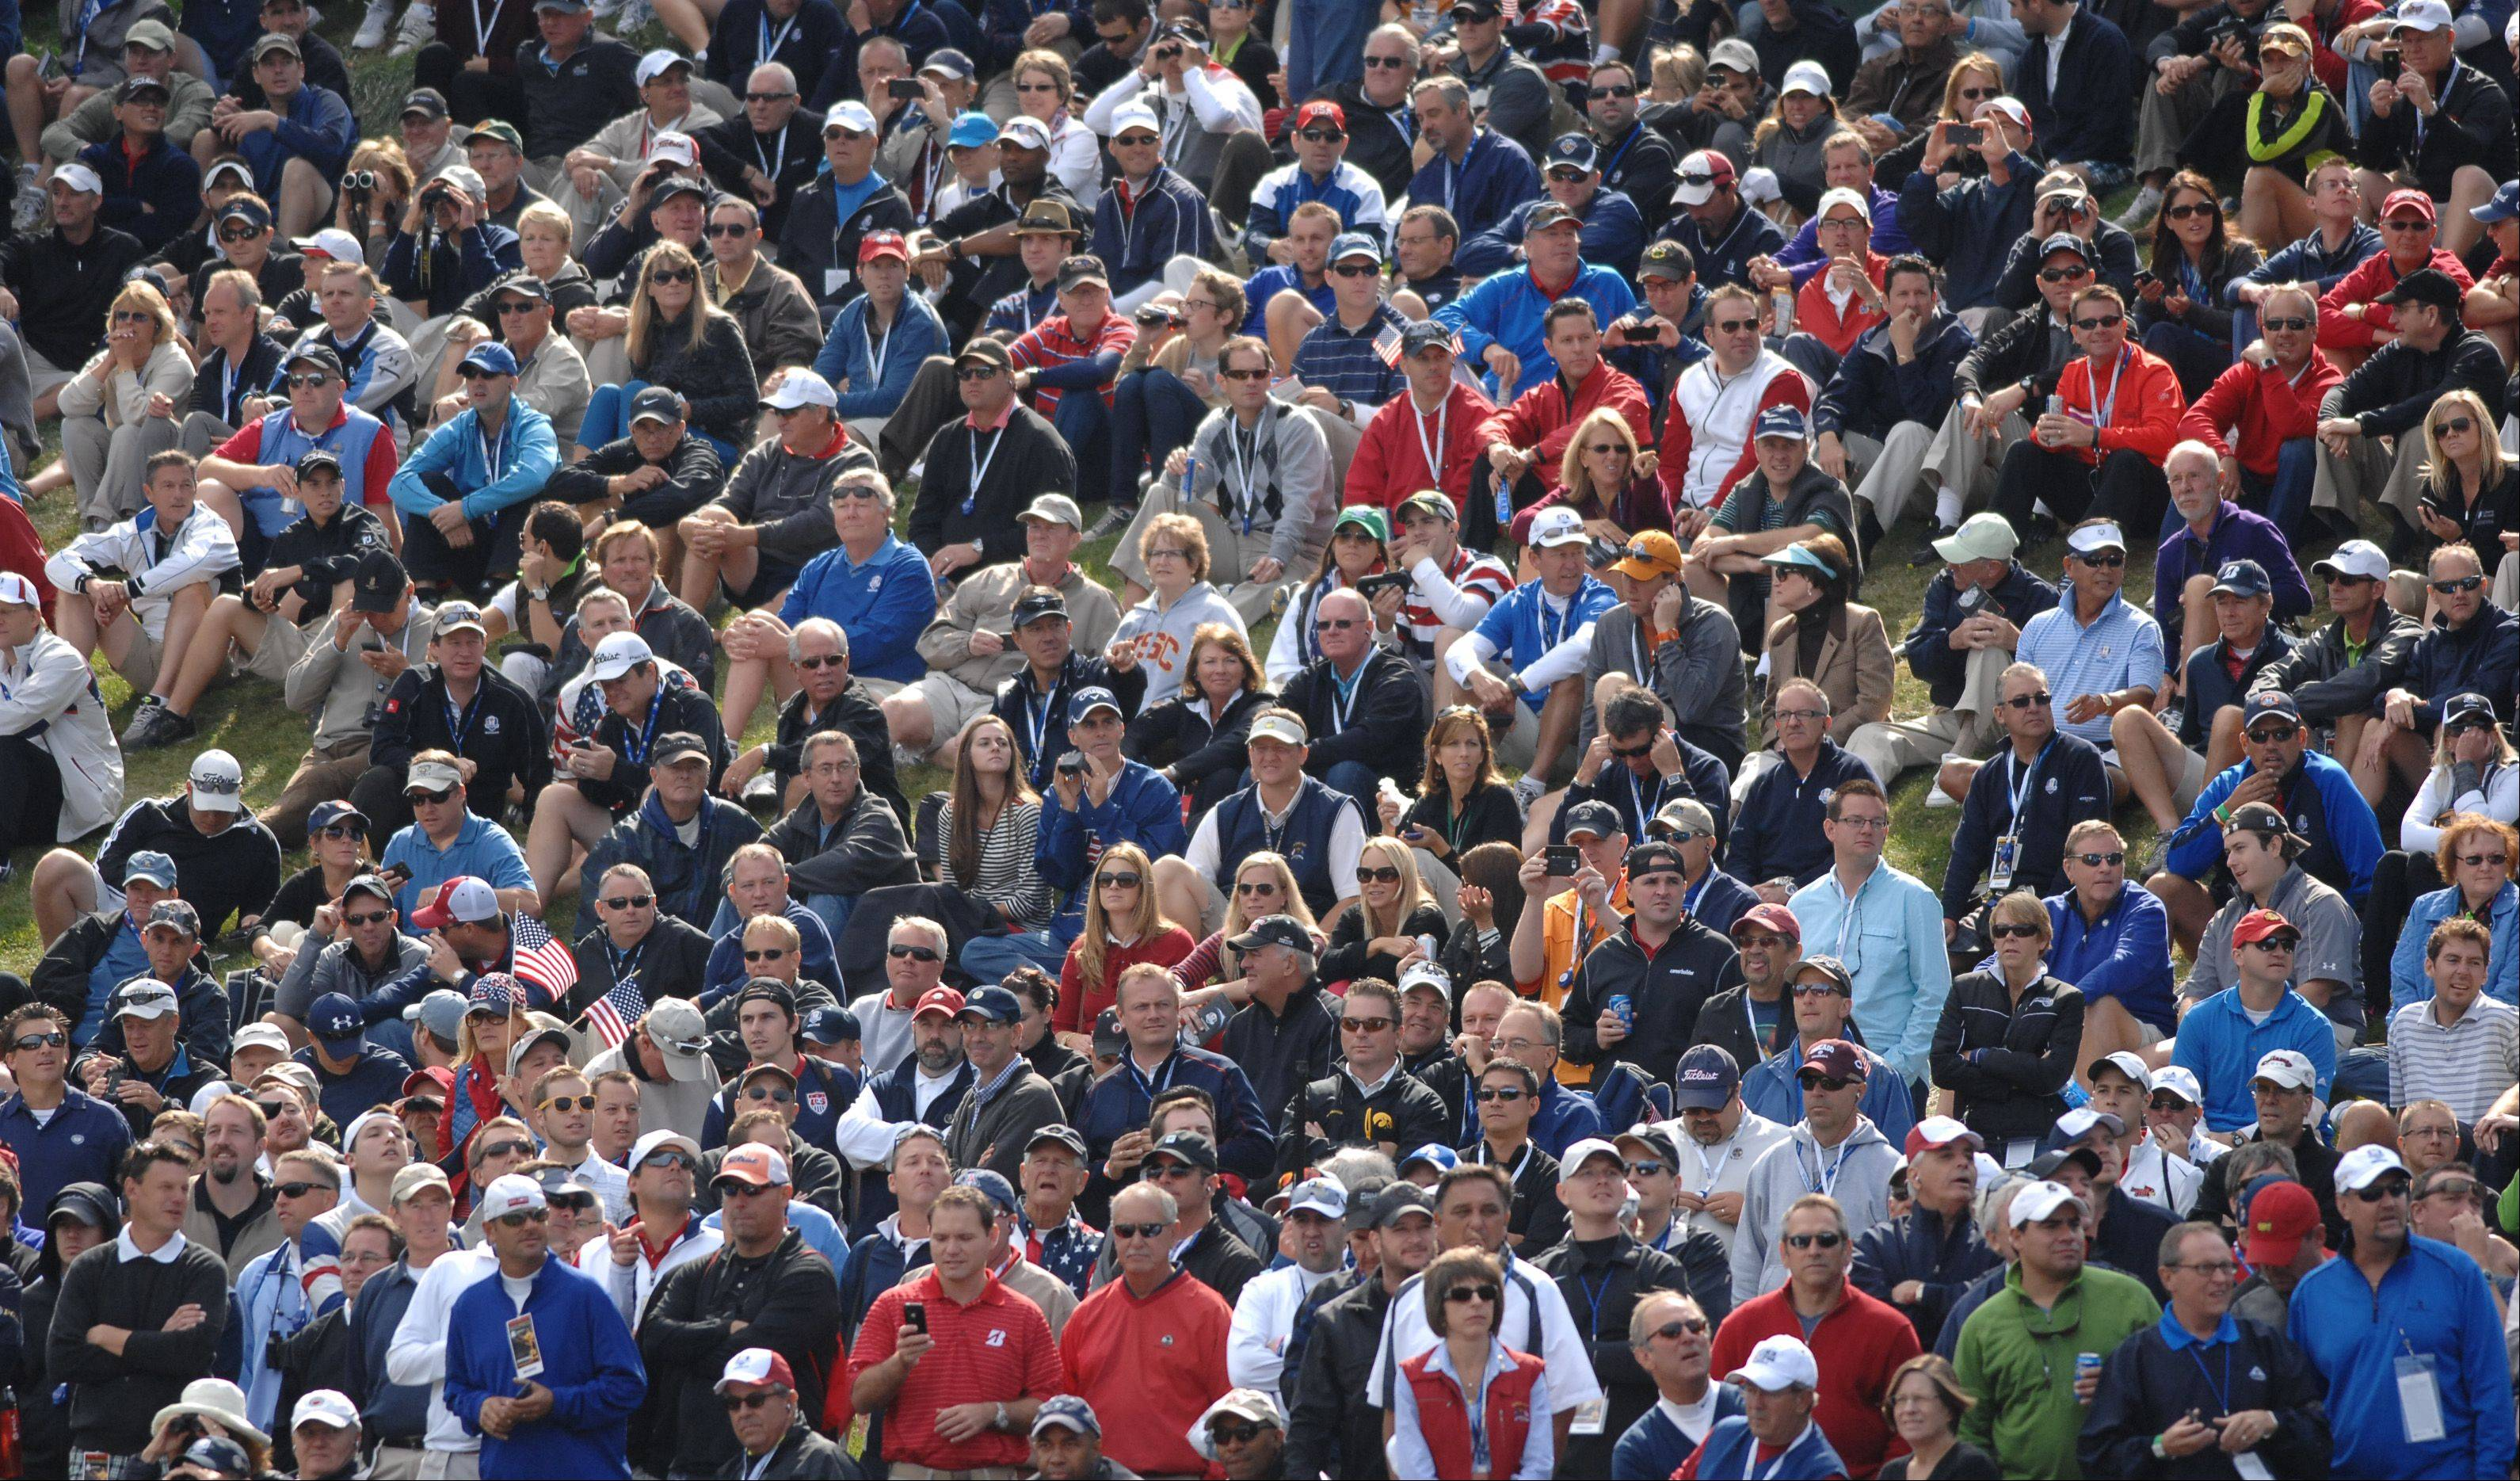 Thousands of fans lined the fairways and bleachers of Medinah Country Club Friday for the first day of the Ryder Cup.